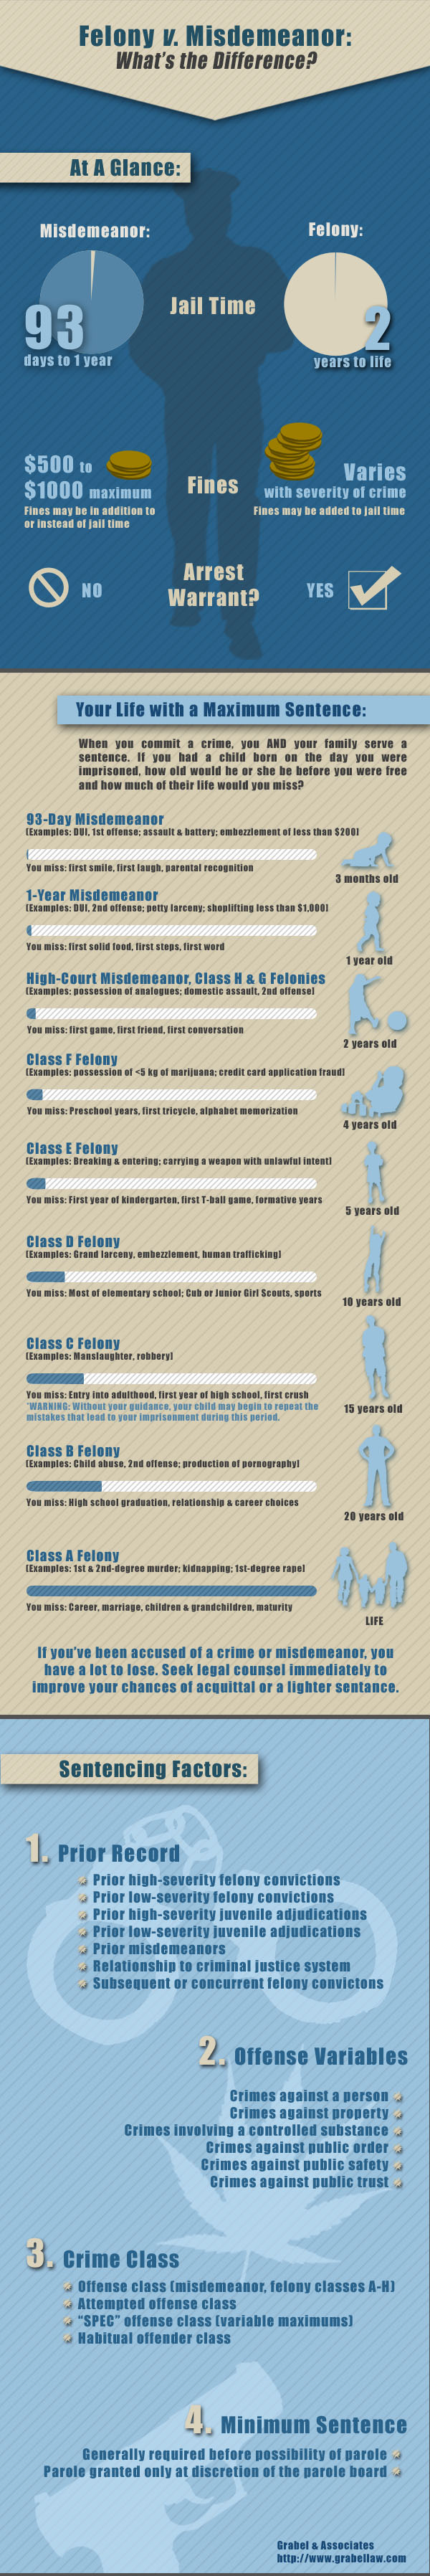 Felony vs Misdemeanor Infographic